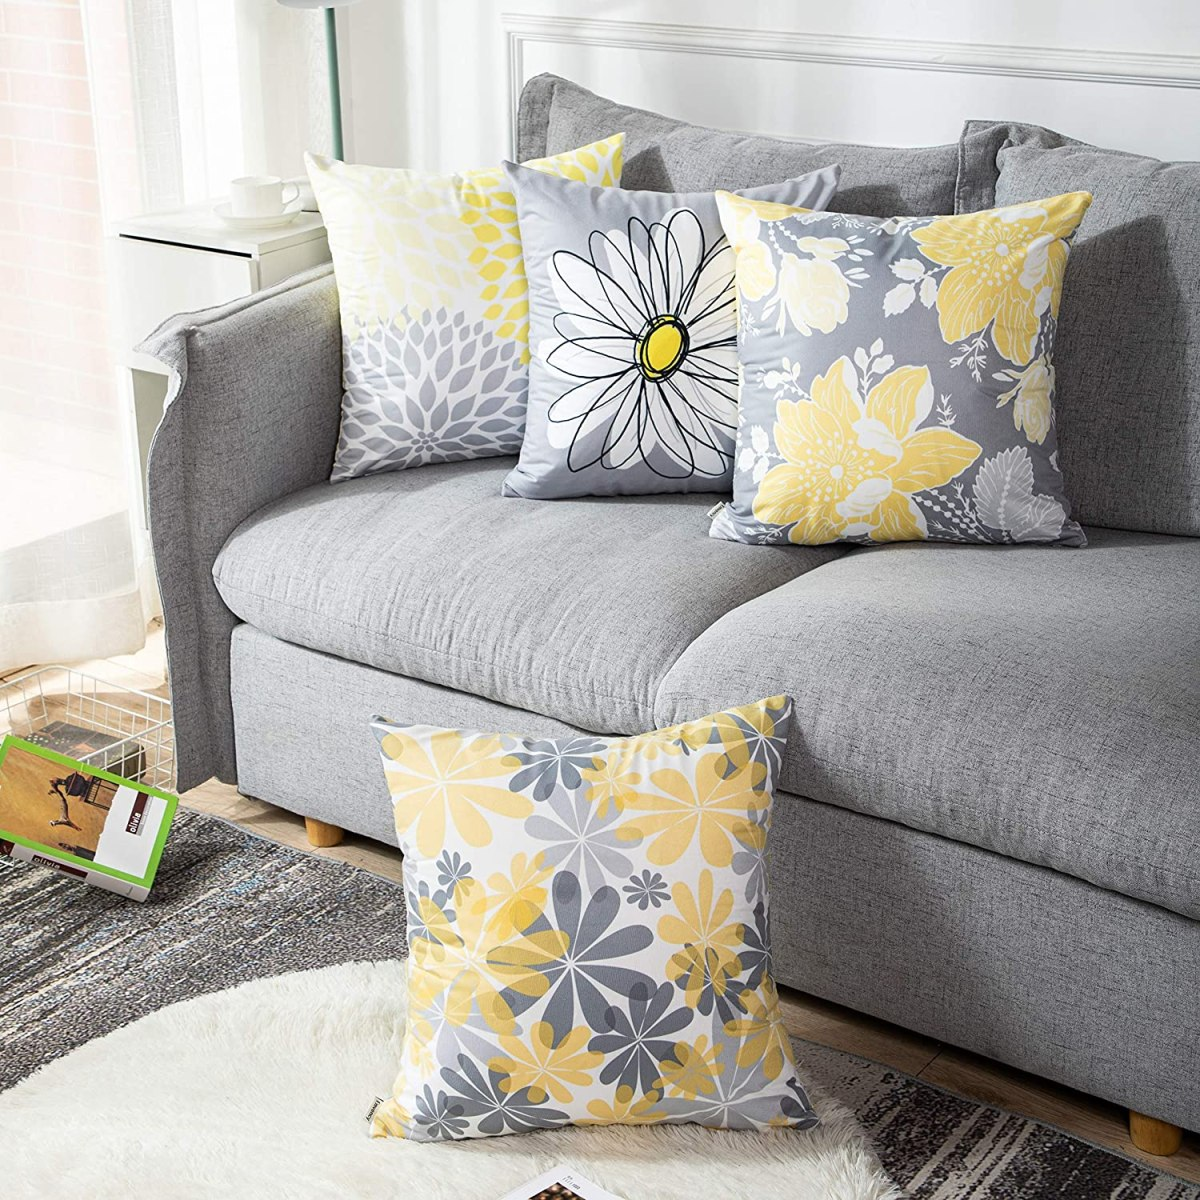 Daisy-Floral-Pillow-Covers